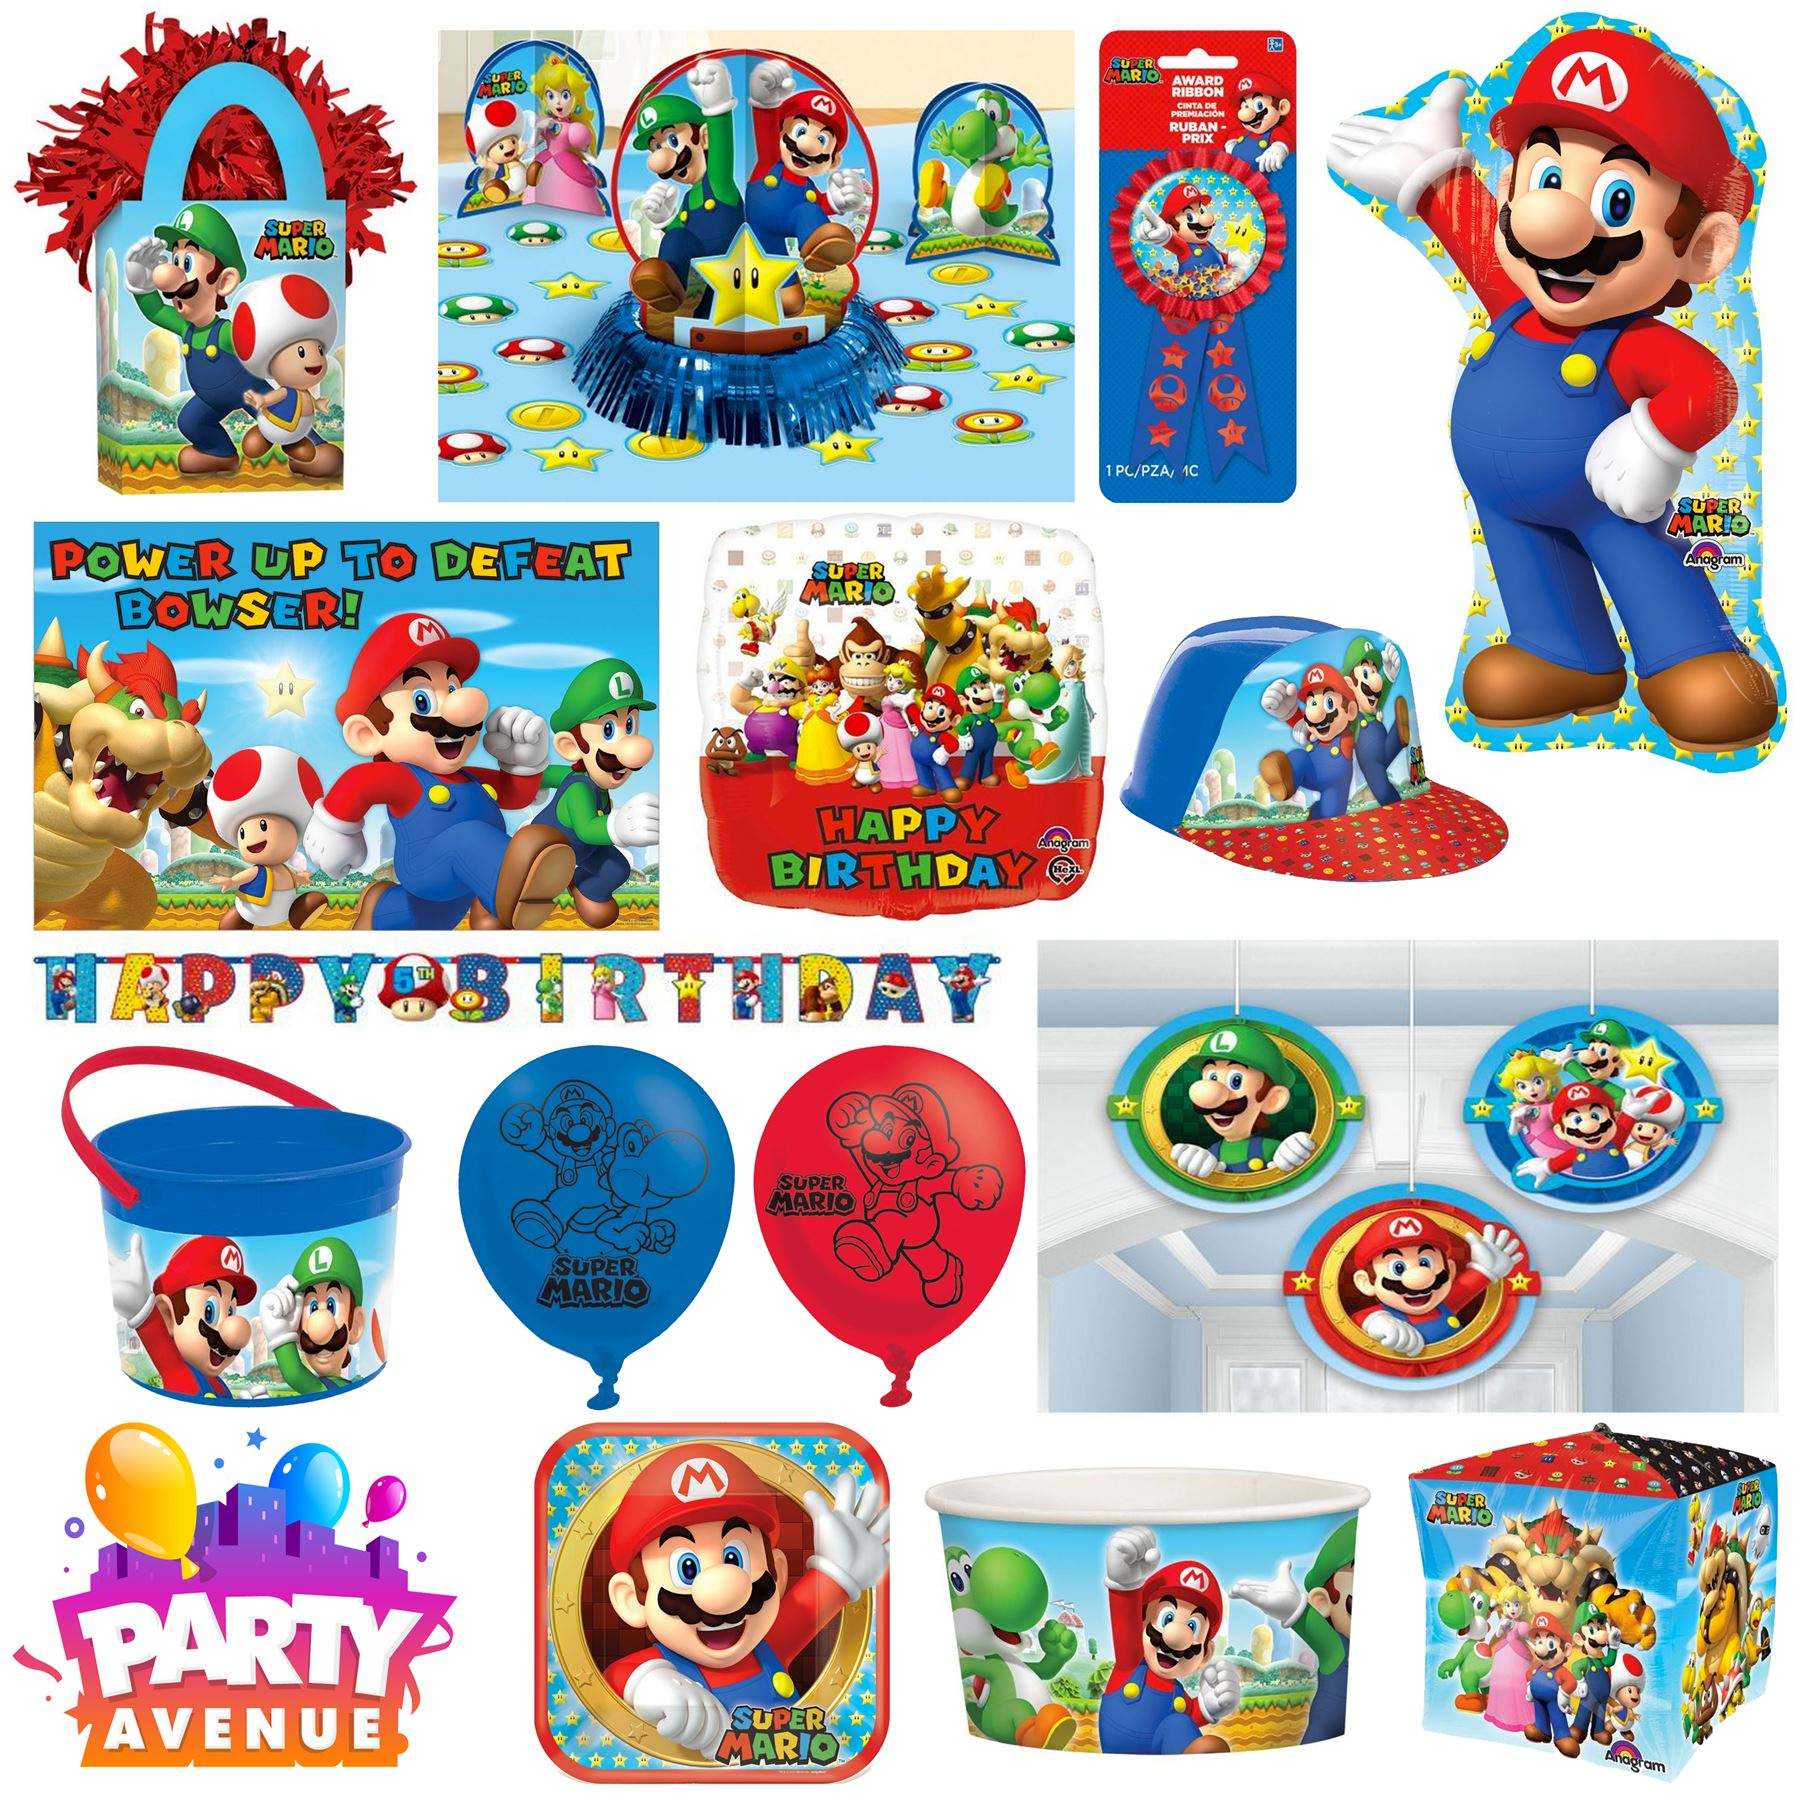 nintendo mario anniversaire d coration de f te ballon. Black Bedroom Furniture Sets. Home Design Ideas